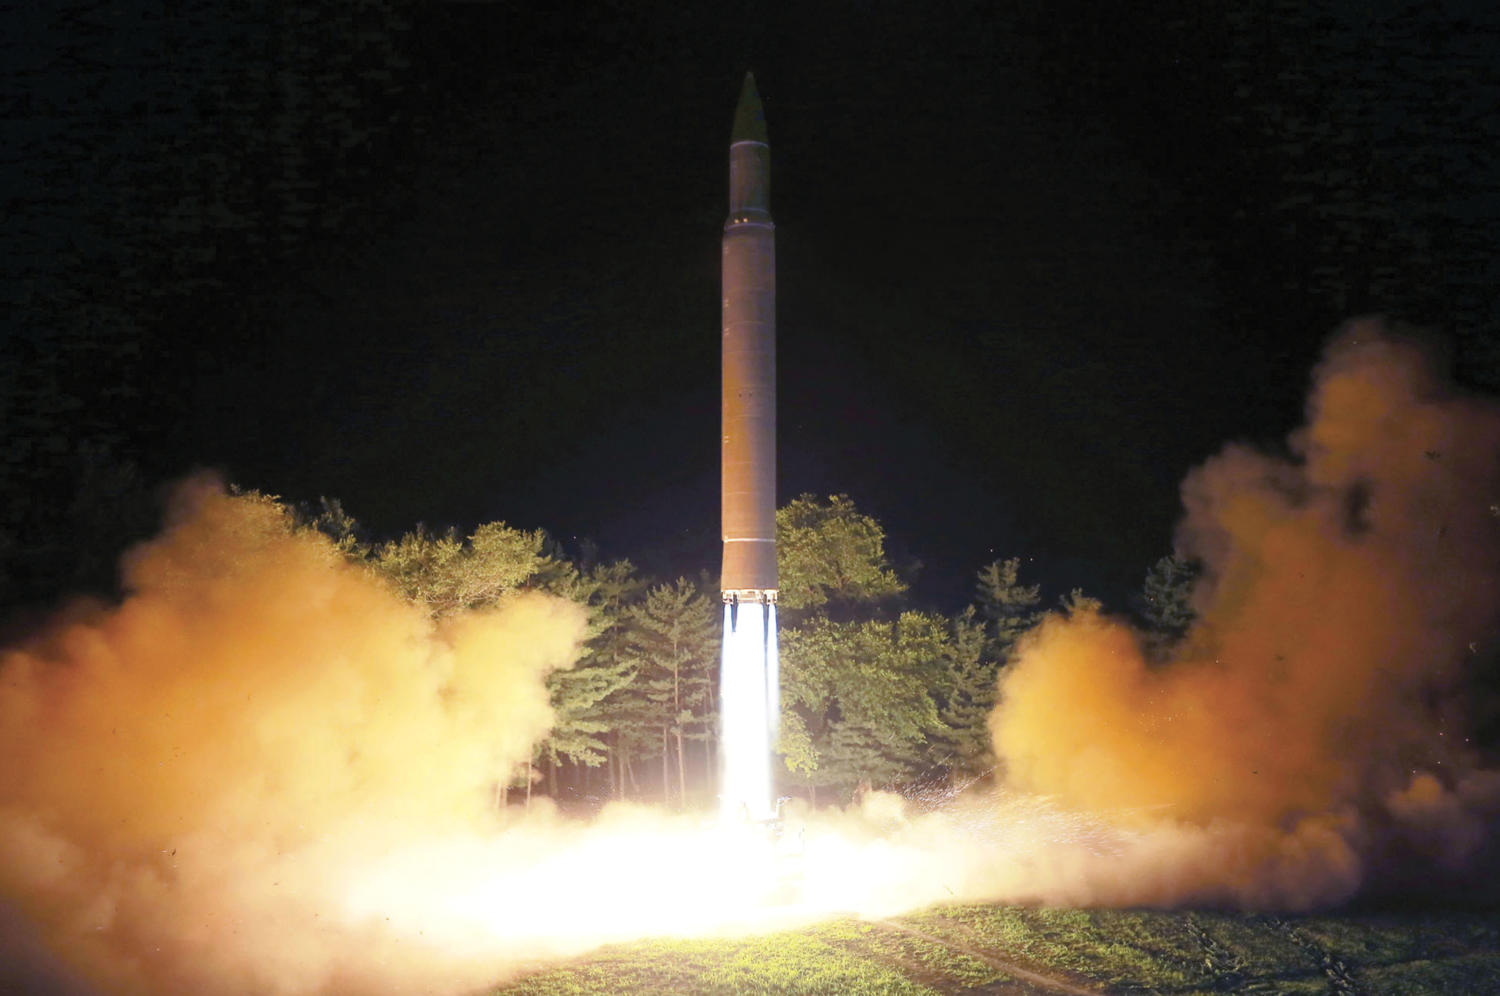 FILE - This July 28, 2017, file photo distributed by the North Korean government shows what was said to be the launch of a Hwasong-14 intercontinental ballistic missile at an undisclosed location in North Korea. America's annual joint military exercises with South Korea always frustrate North Korea. Some experts say North Korea is mainly focused on the bigger picture of testing its bargaining power against the United States with its new long-range missiles and likely has no interest in letting things get too tense during the drills. (Korean Central News Agency/Korea News Service via AP, File)